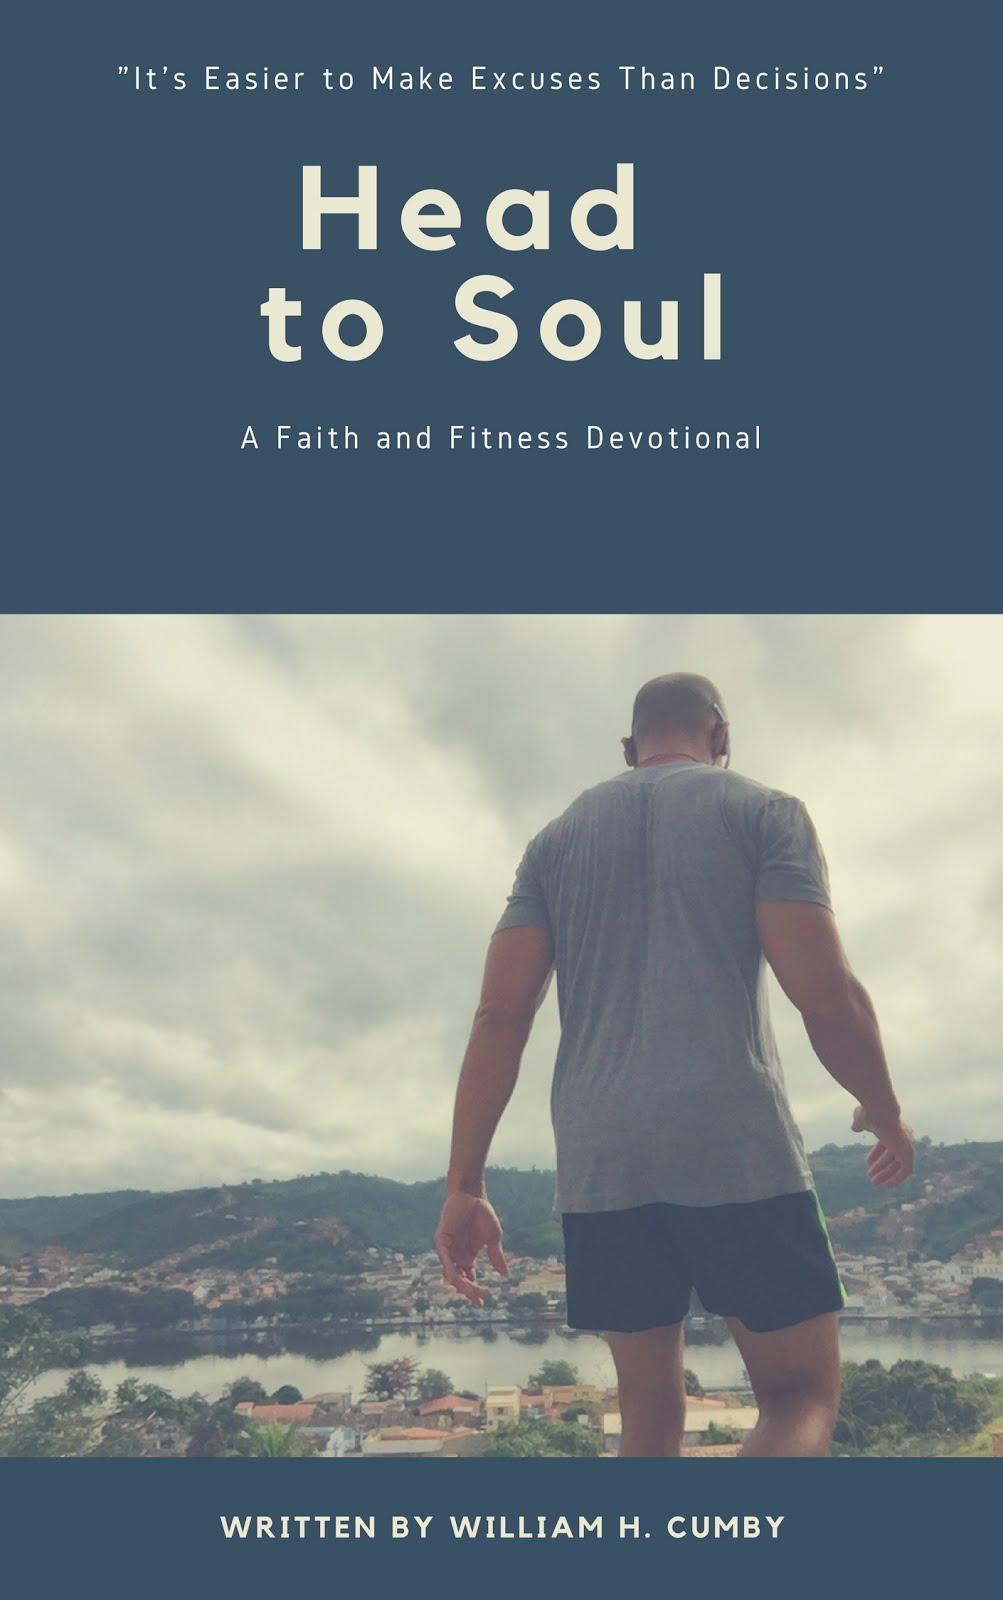 Head to Soul by William Cumby